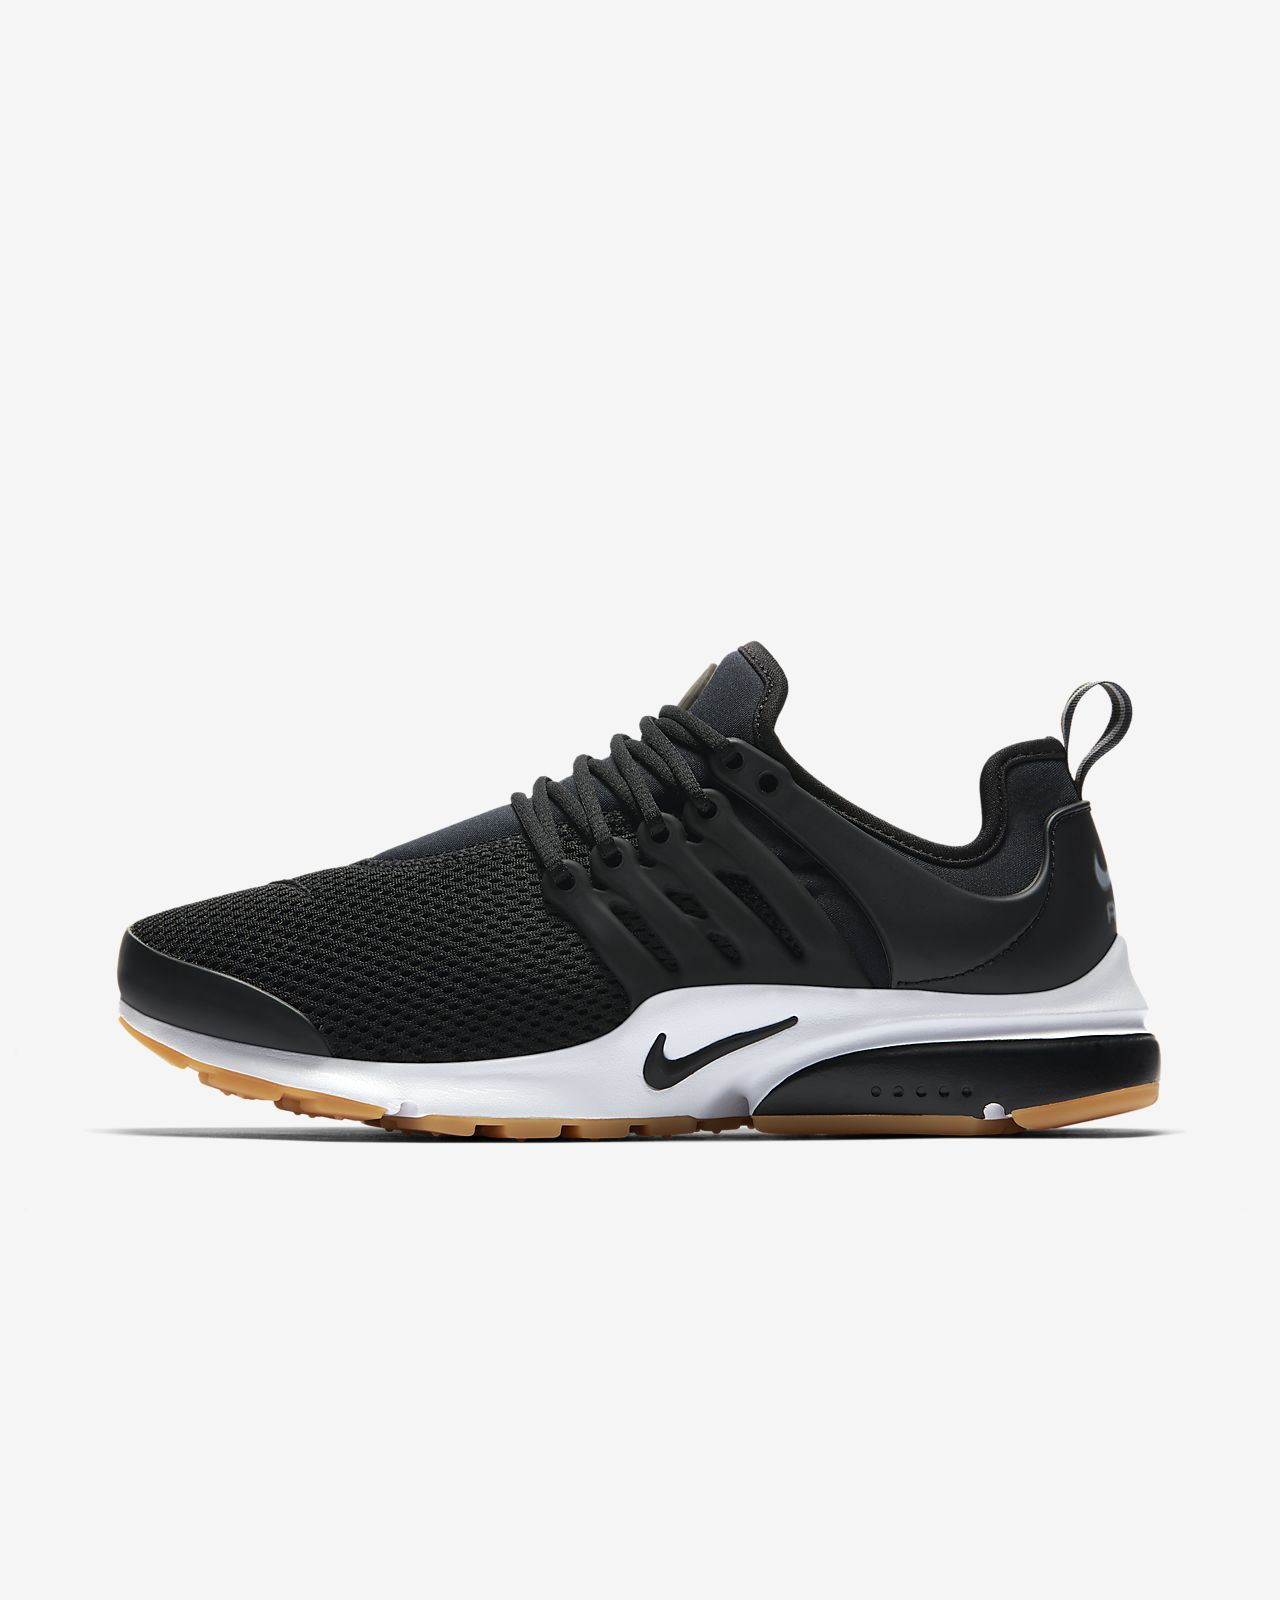 watch 7d61e 95b0a ... Nike Air Presto Women s Shoe